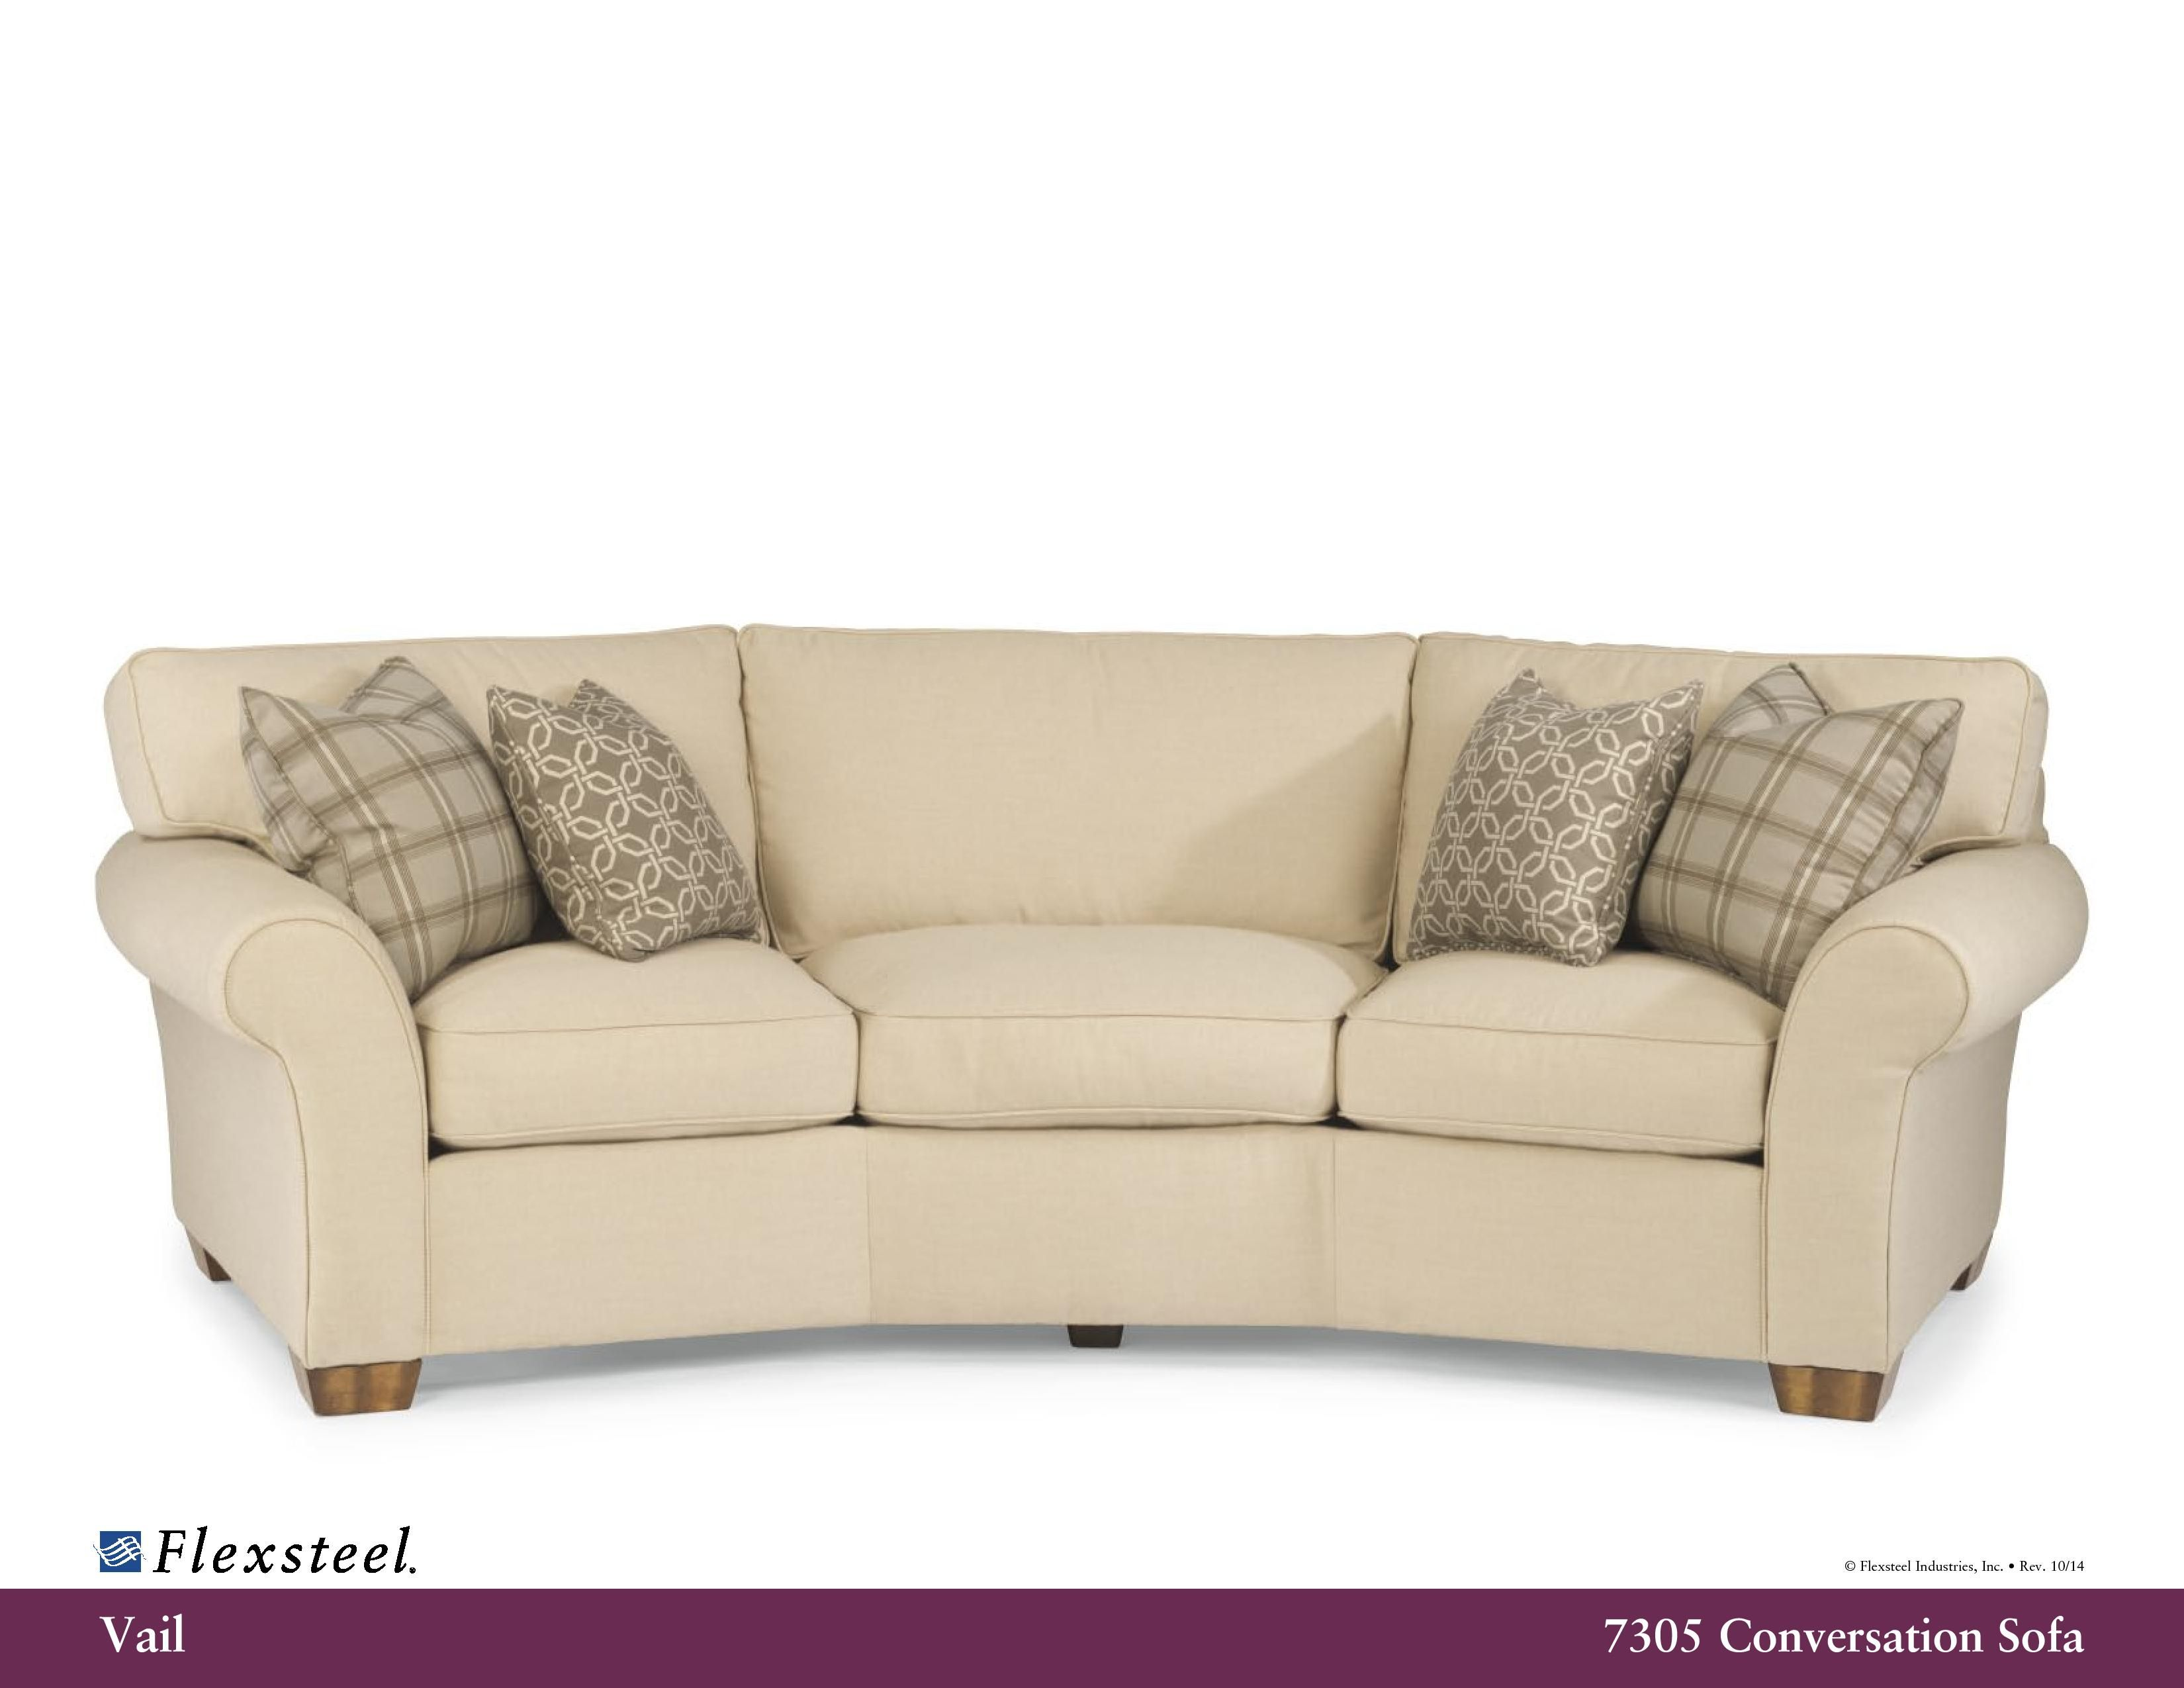 flexsteel conversation sofa designs inspiration site rh pinterest com